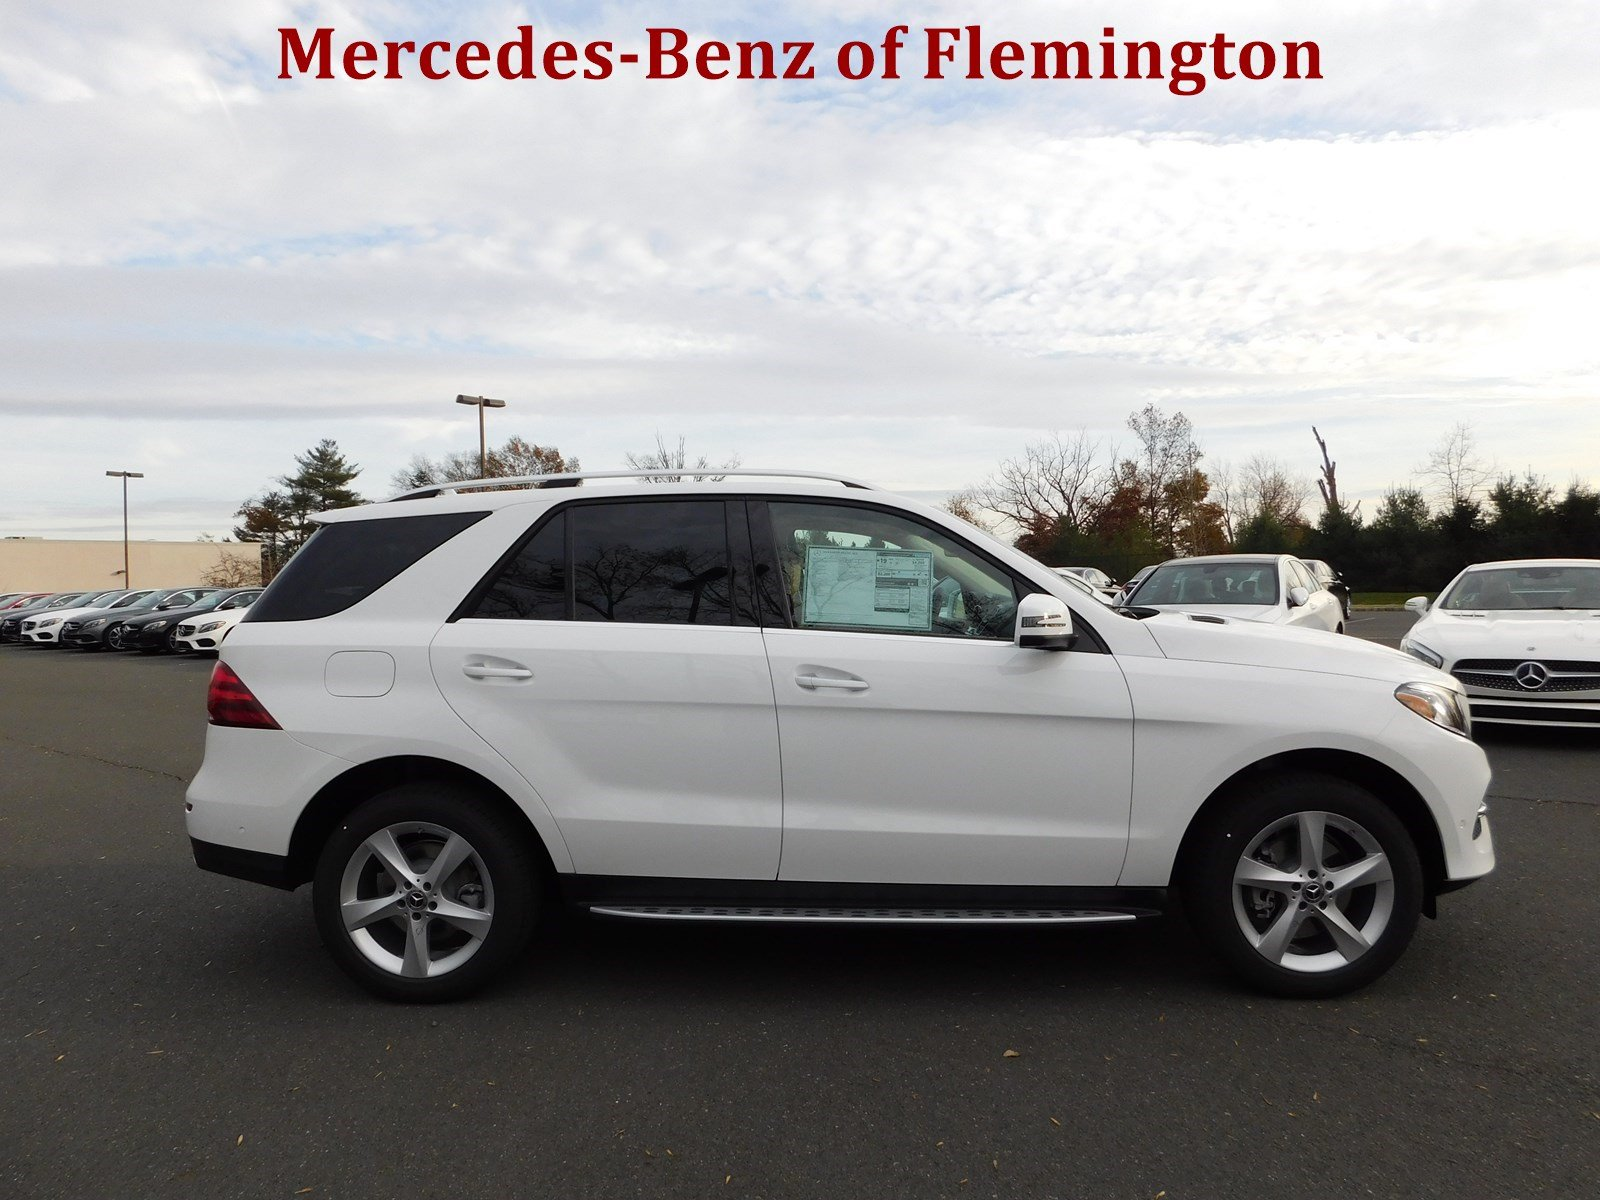 New 2018 mercedes benz gle gle 350 suv in flemington for Mercedes benz financial contact number